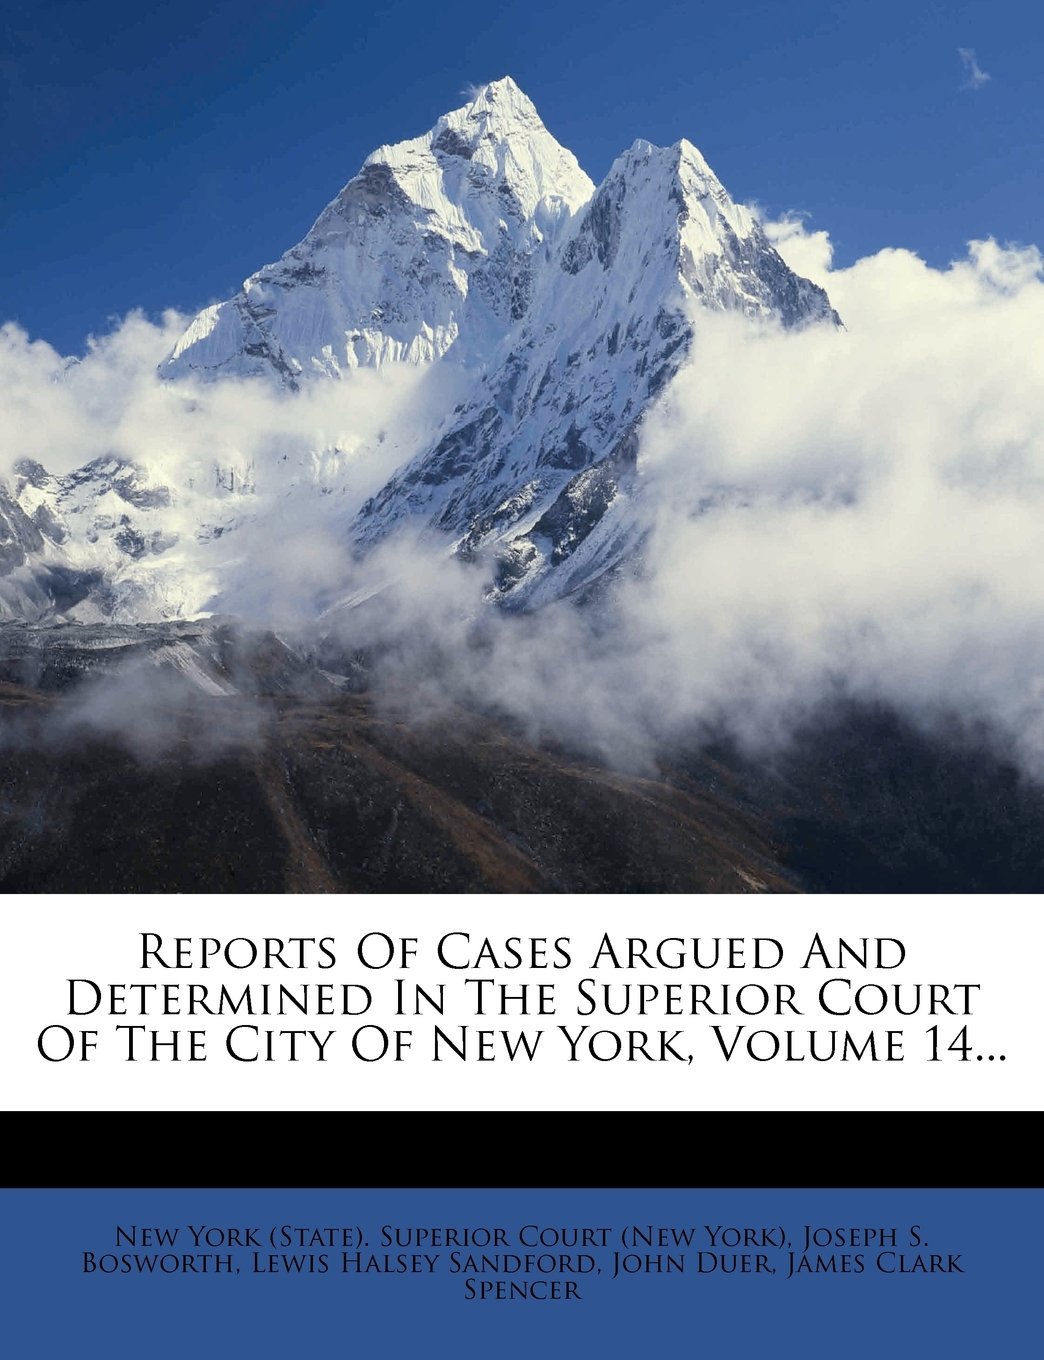 Download Reports Of Cases Argued And Determined In The Superior Court Of The City Of New York, Volume 14... ebook